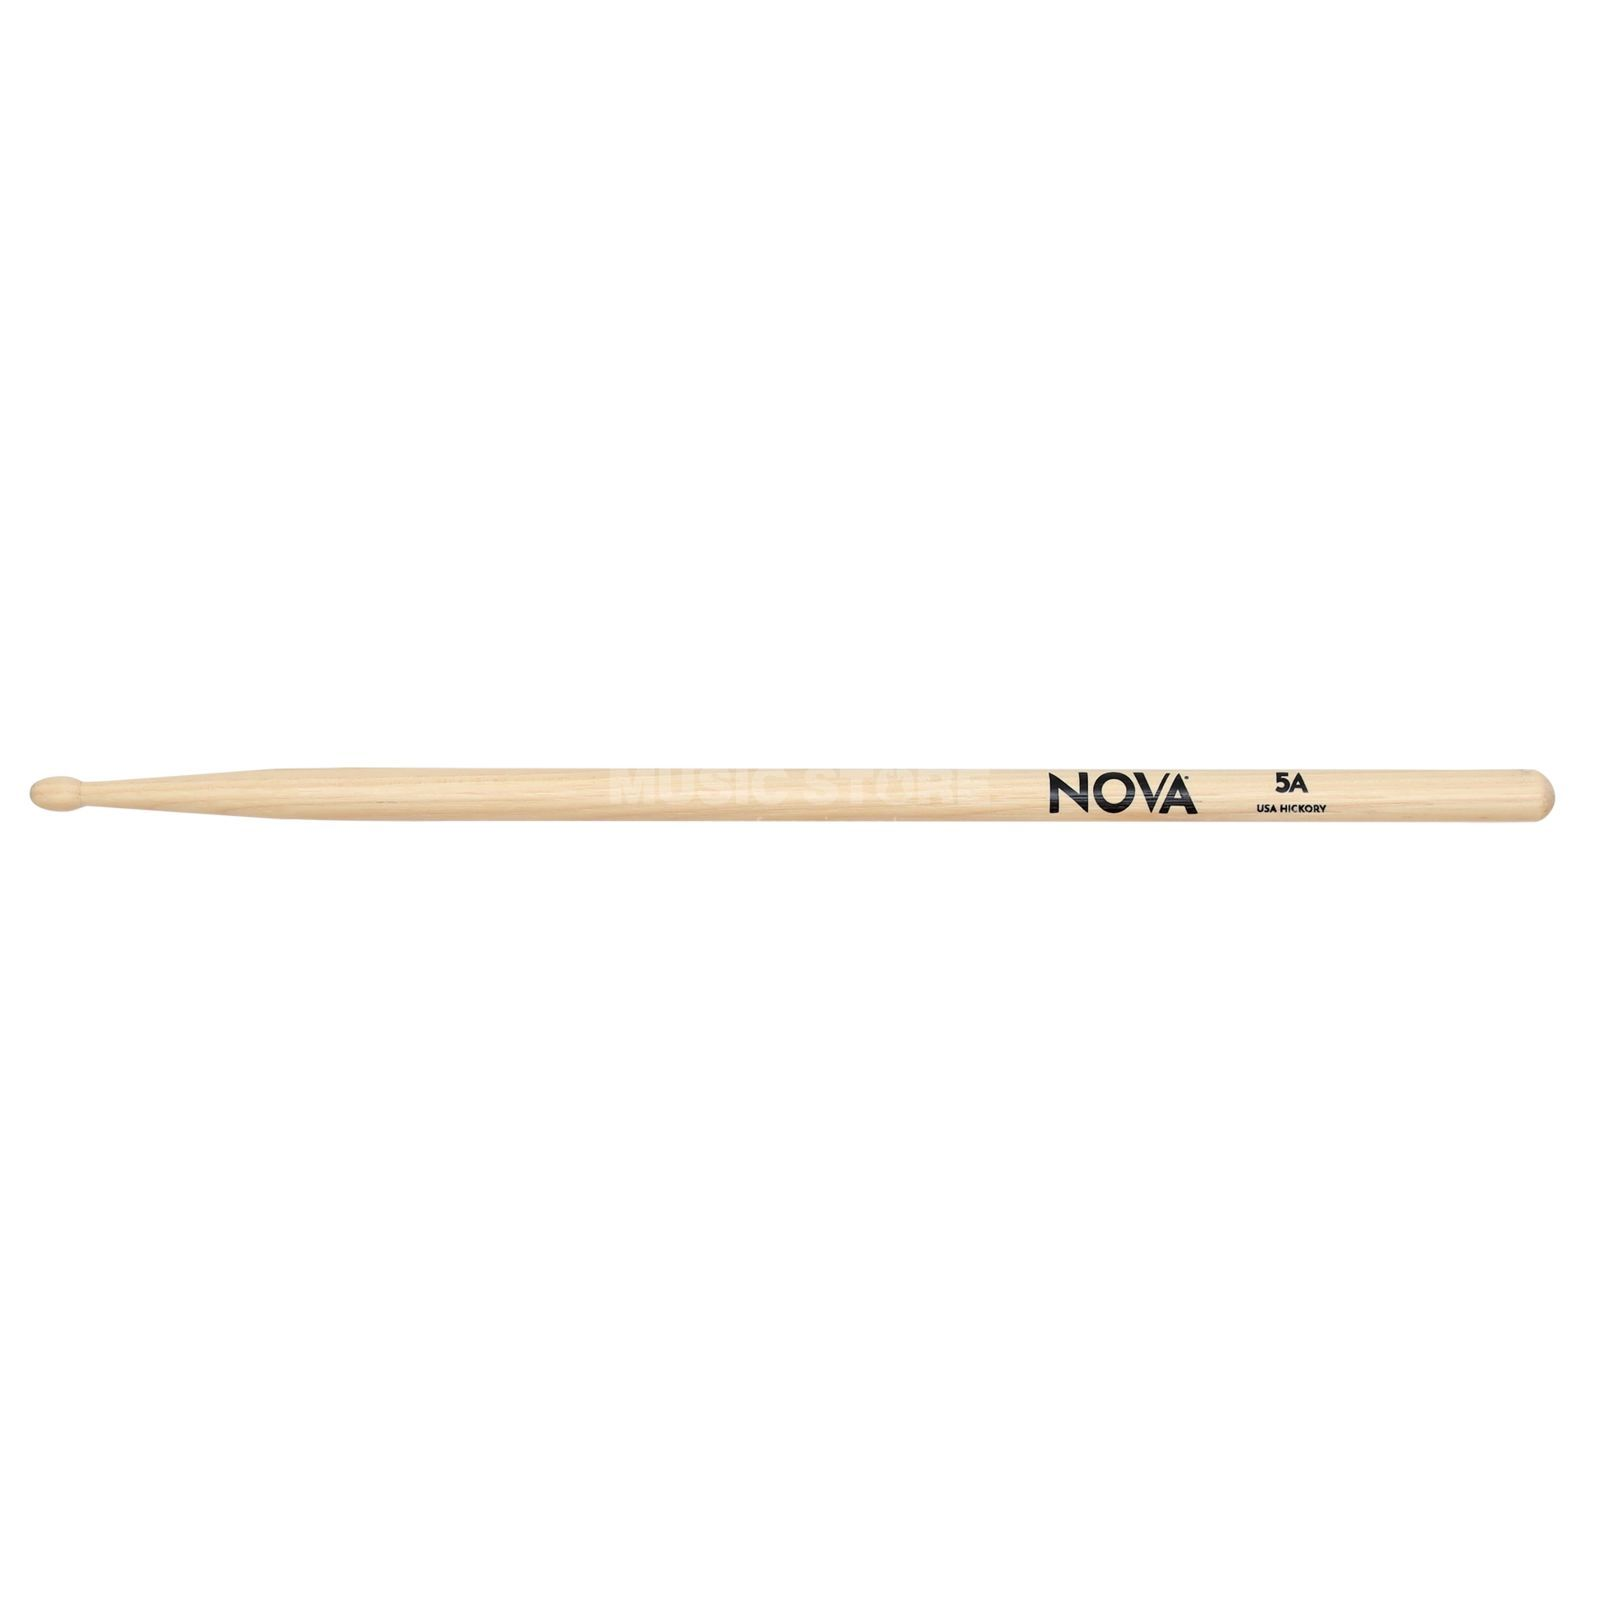 Vic-Firth Nova Drum Sticks 5A, Wood Tip Produktbild